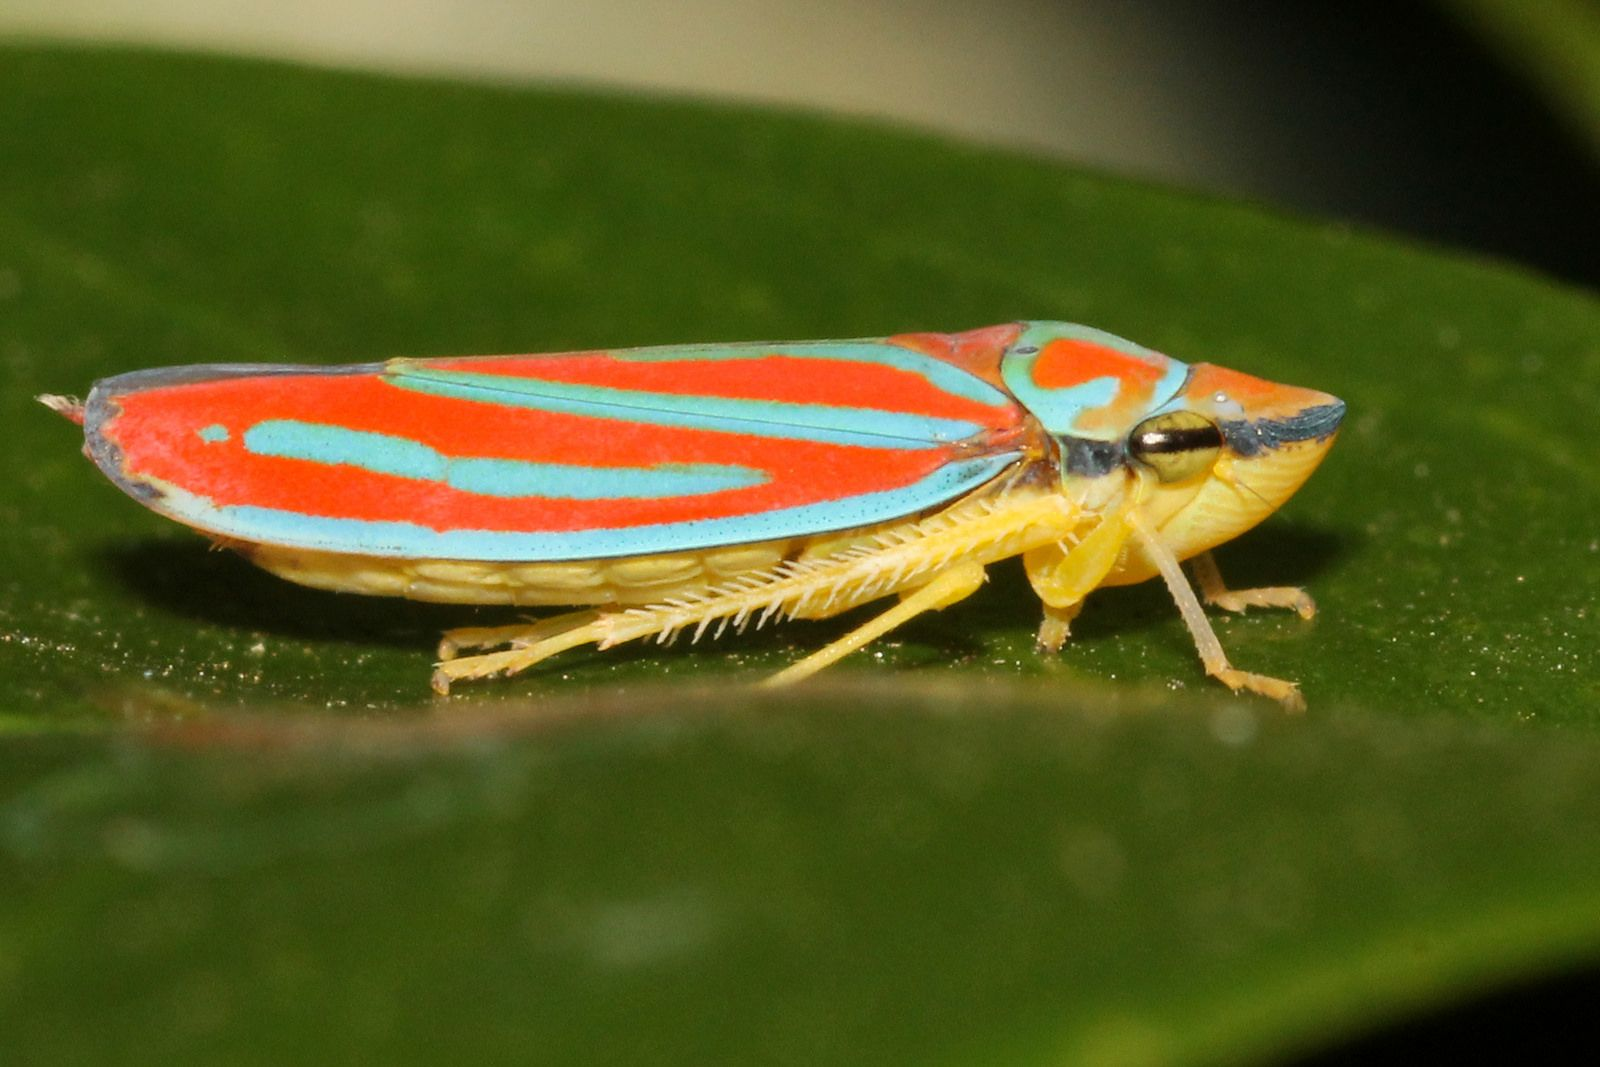 Nathan Marcy on Leafhopper